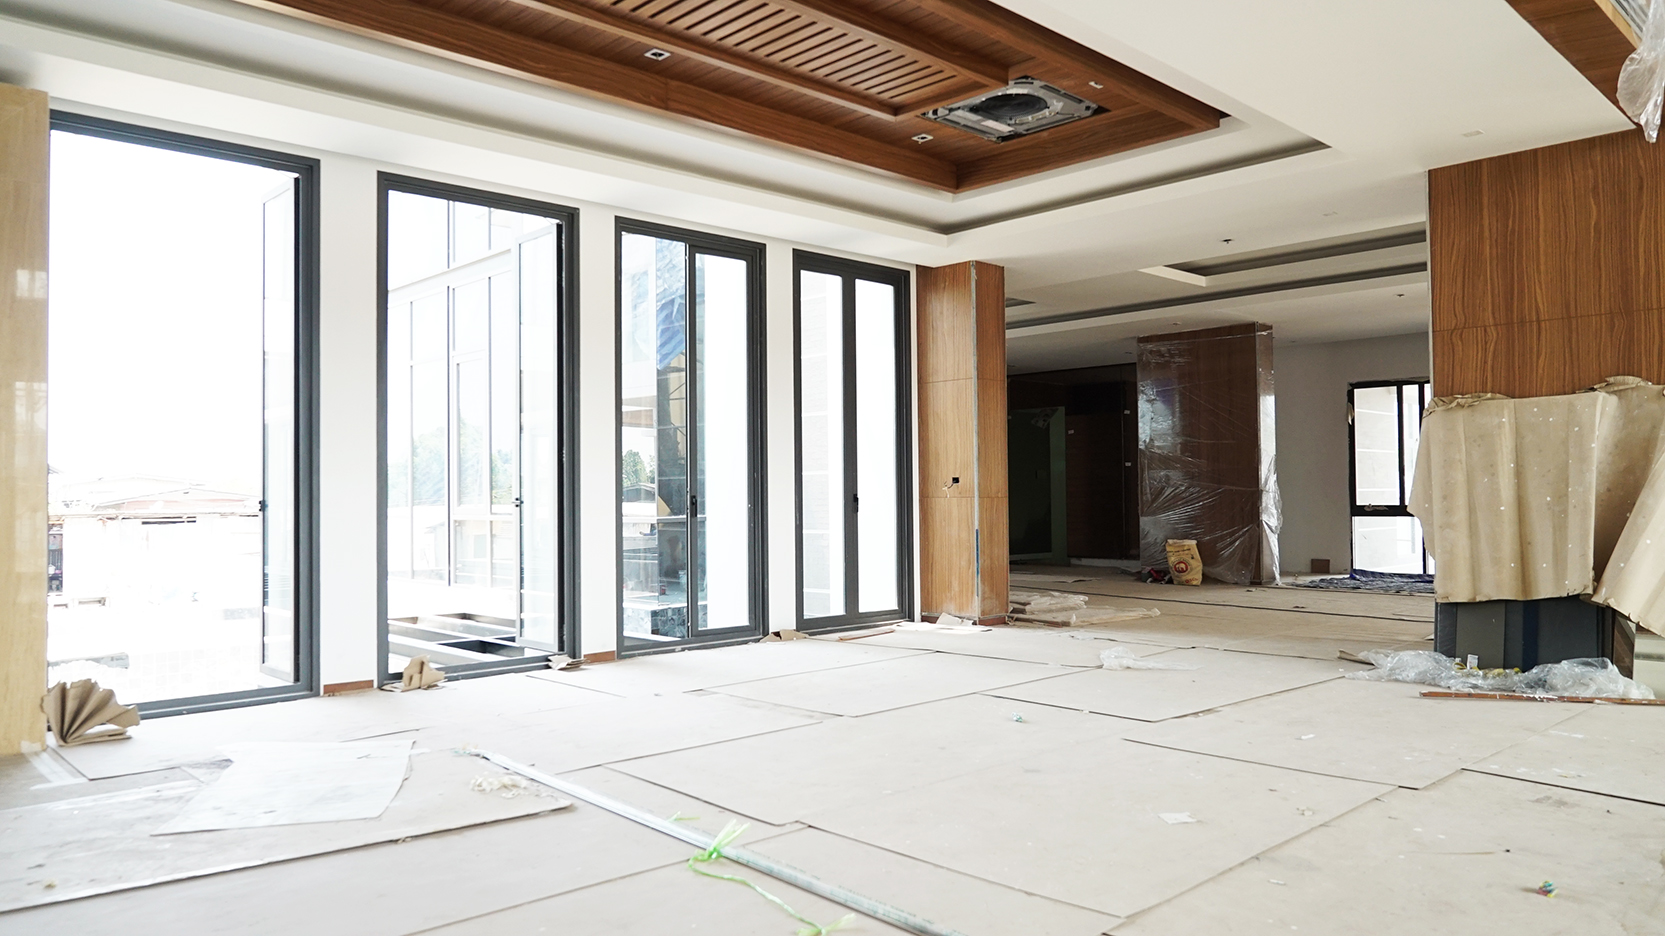 lerd residence interior design residential project house leisure construction process modern archite